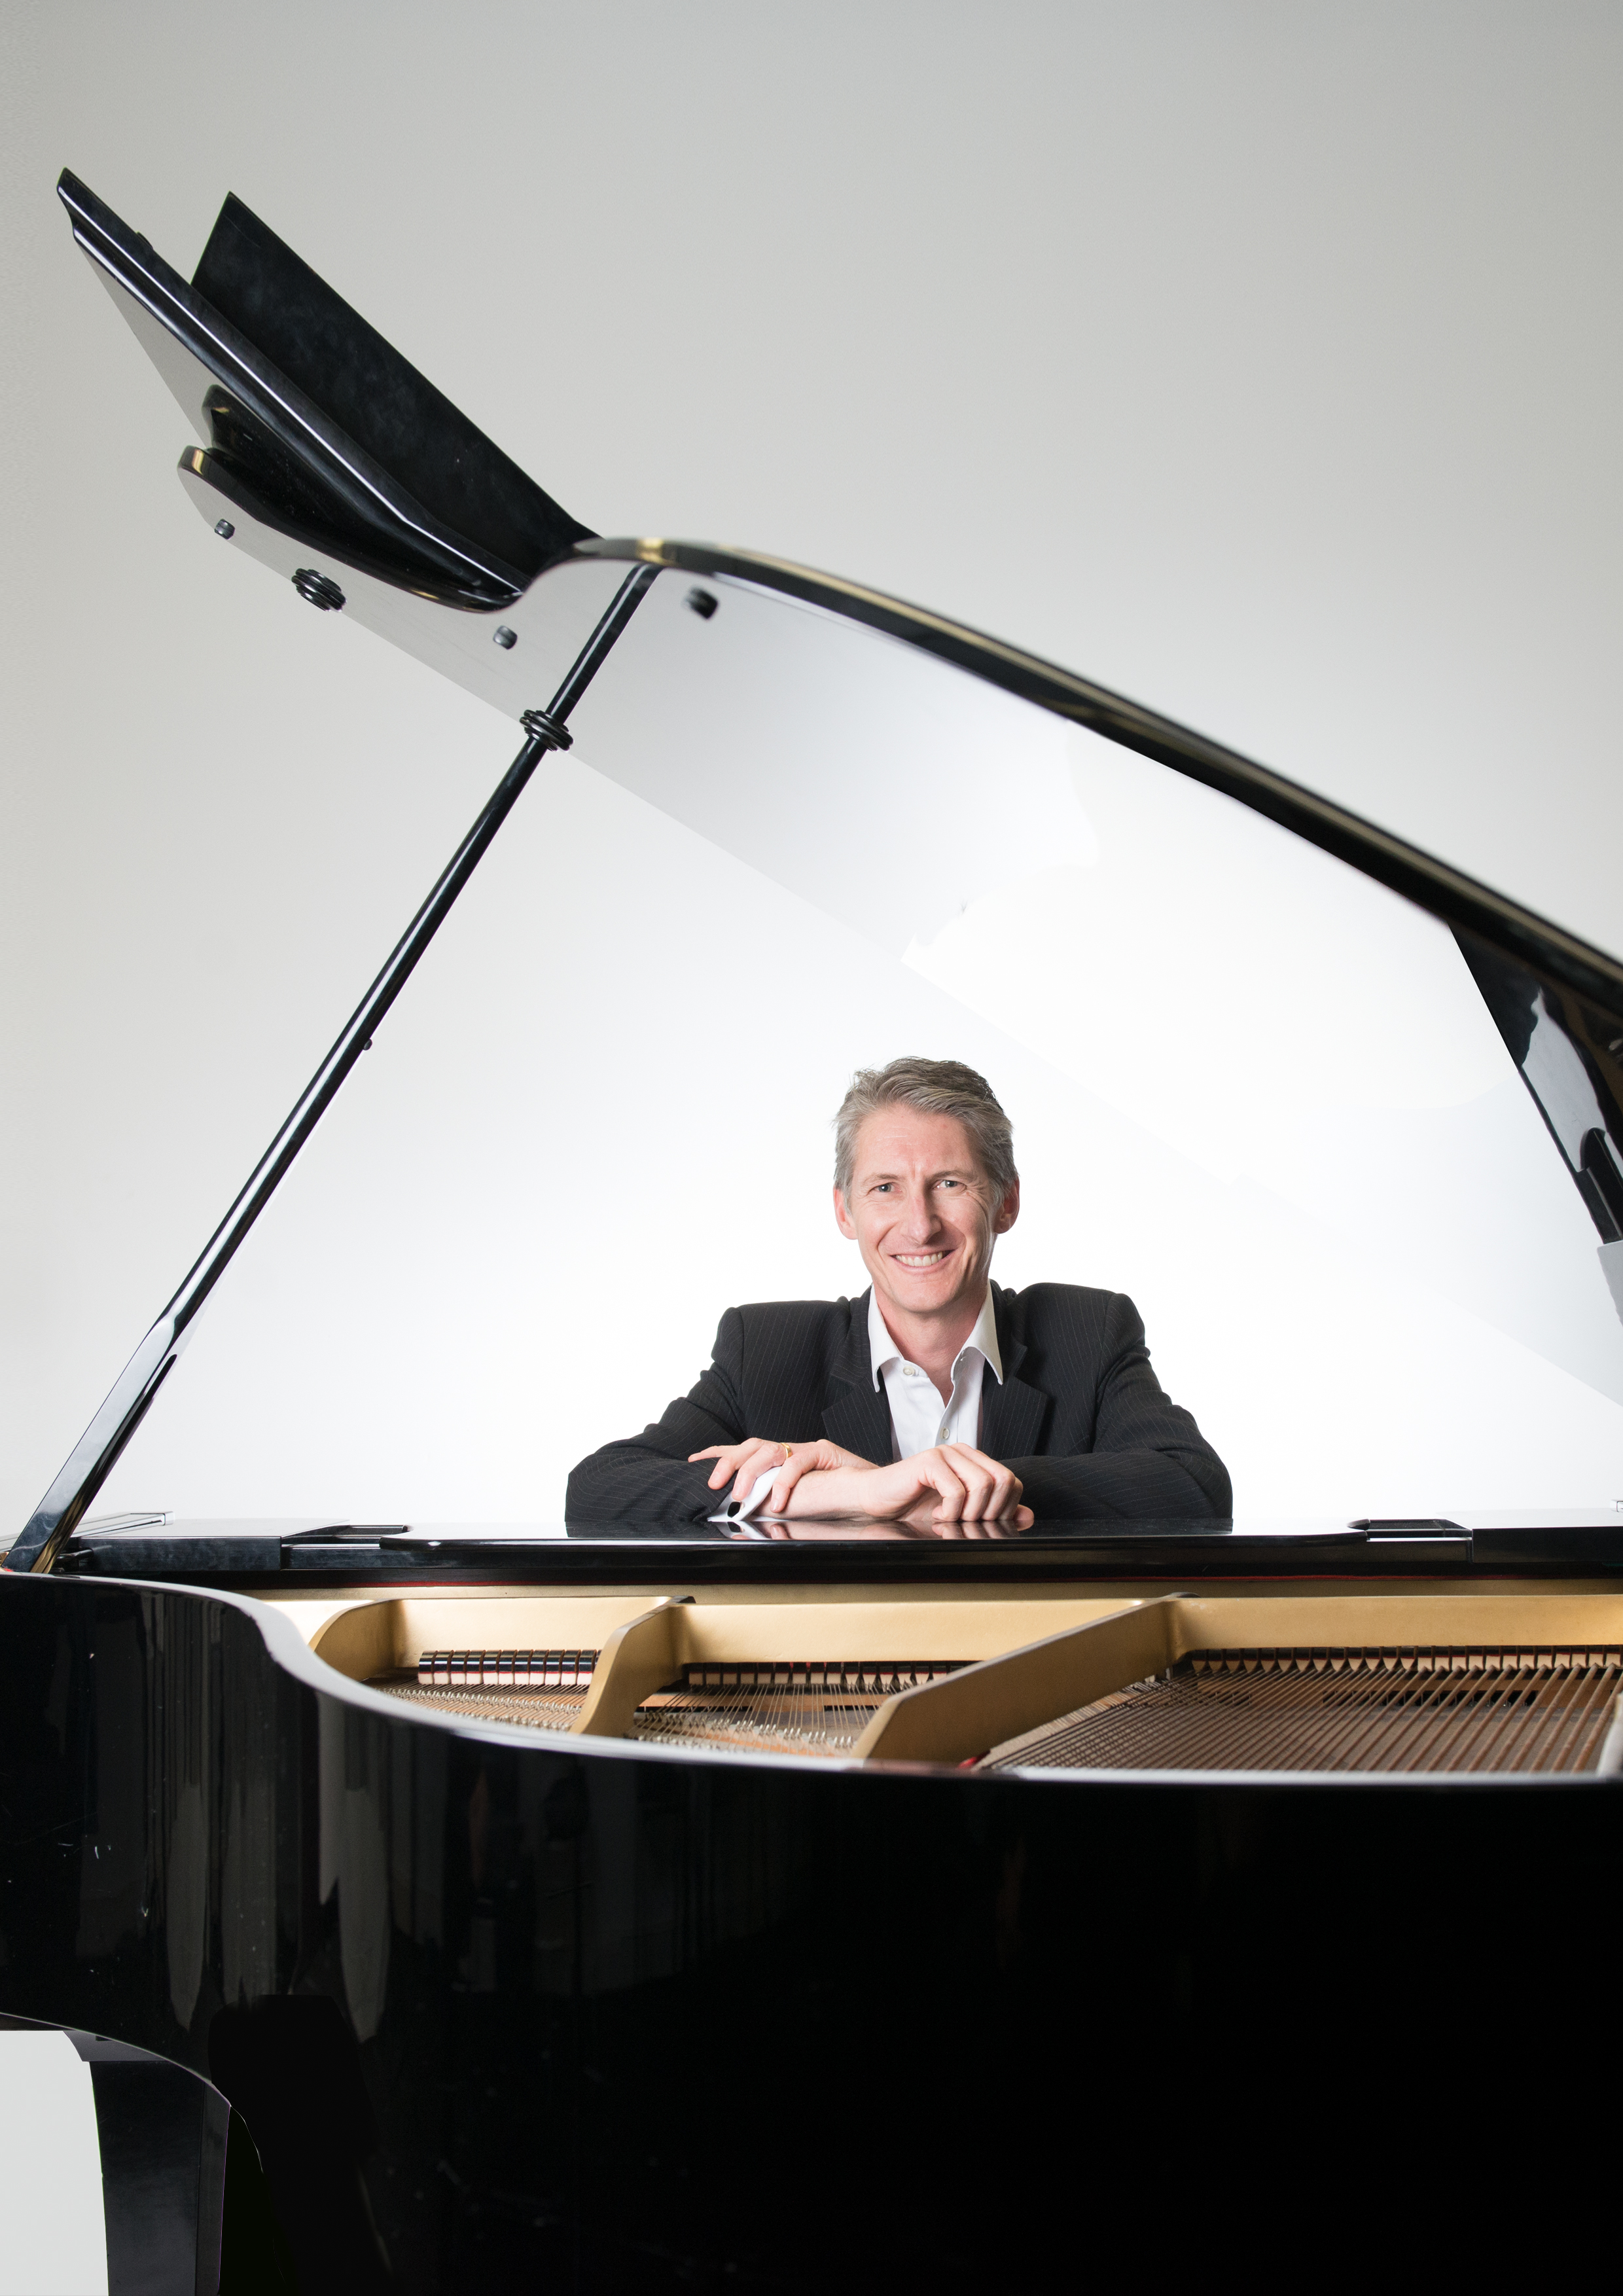 Craig Schneider performs The Piano Men at the Cardinia Cultural Centre